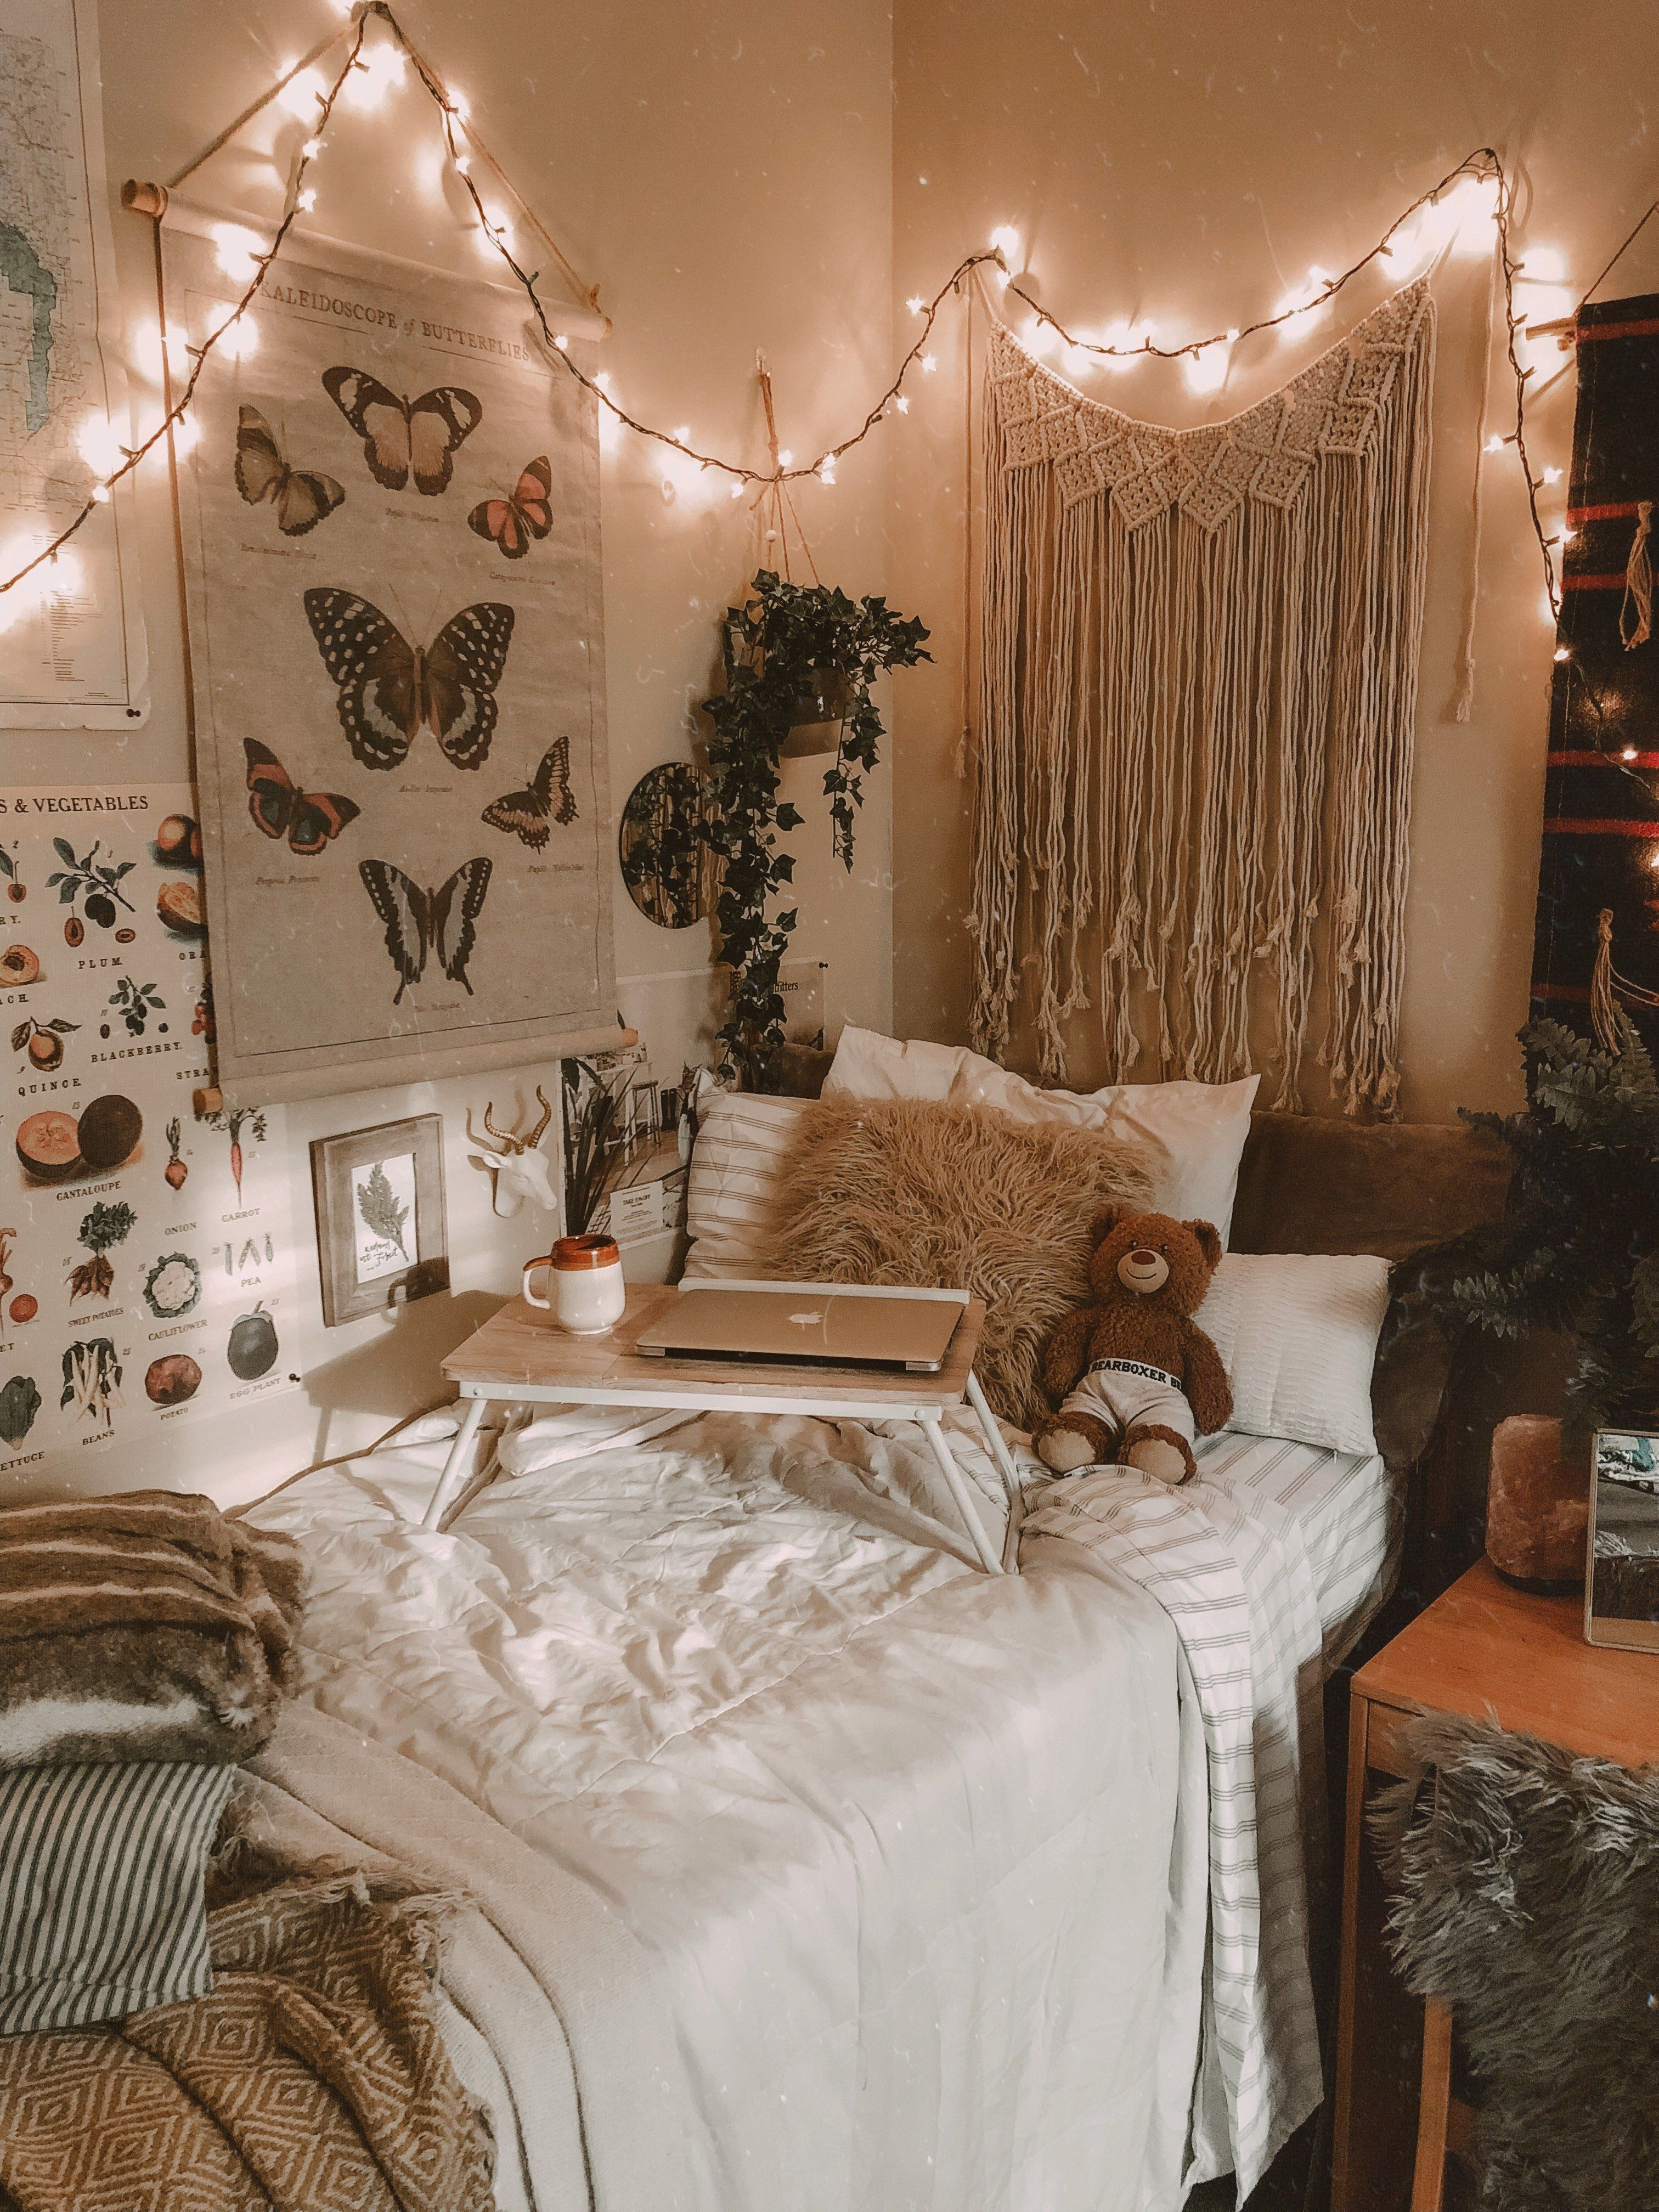 This Interior Design Major's Dorm Room Might Be the Coolest, Coziest Place on Campus